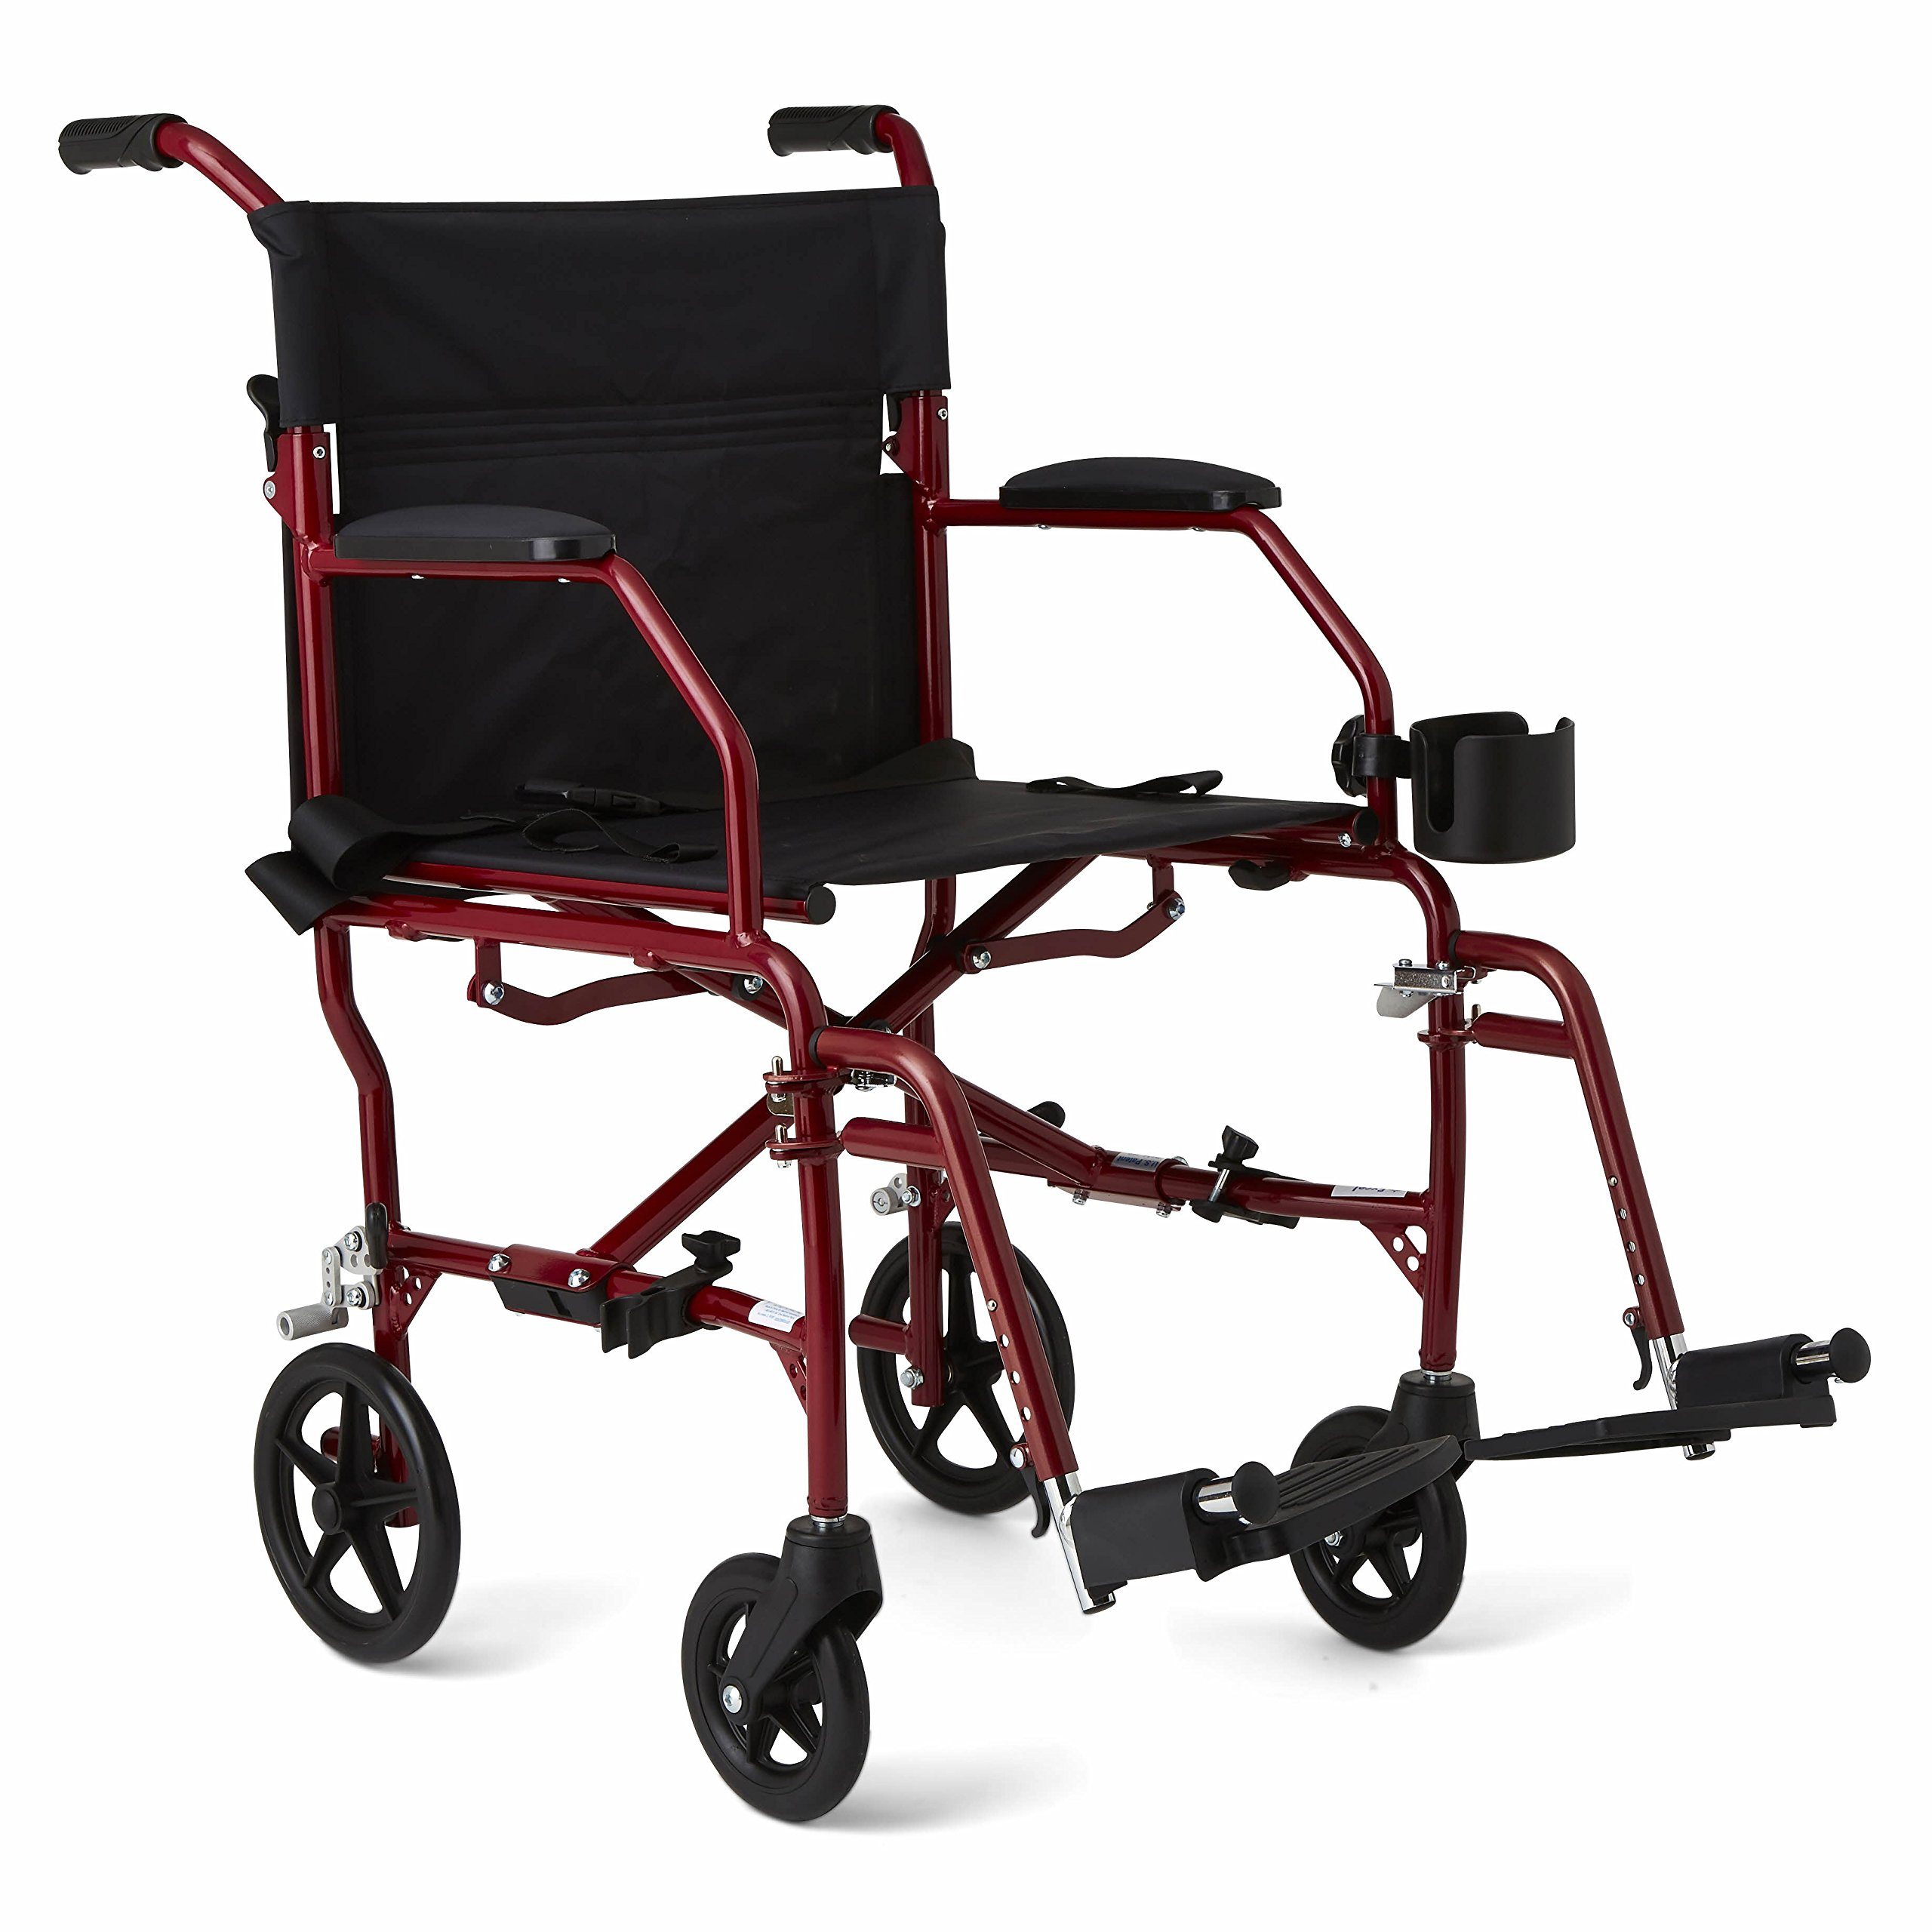 Medline Ultralight Transport Wheelchair with 19'' Wide Seat, Folding Transport Chair with Permanent Desk-Length Arms, Red Frame by Medline